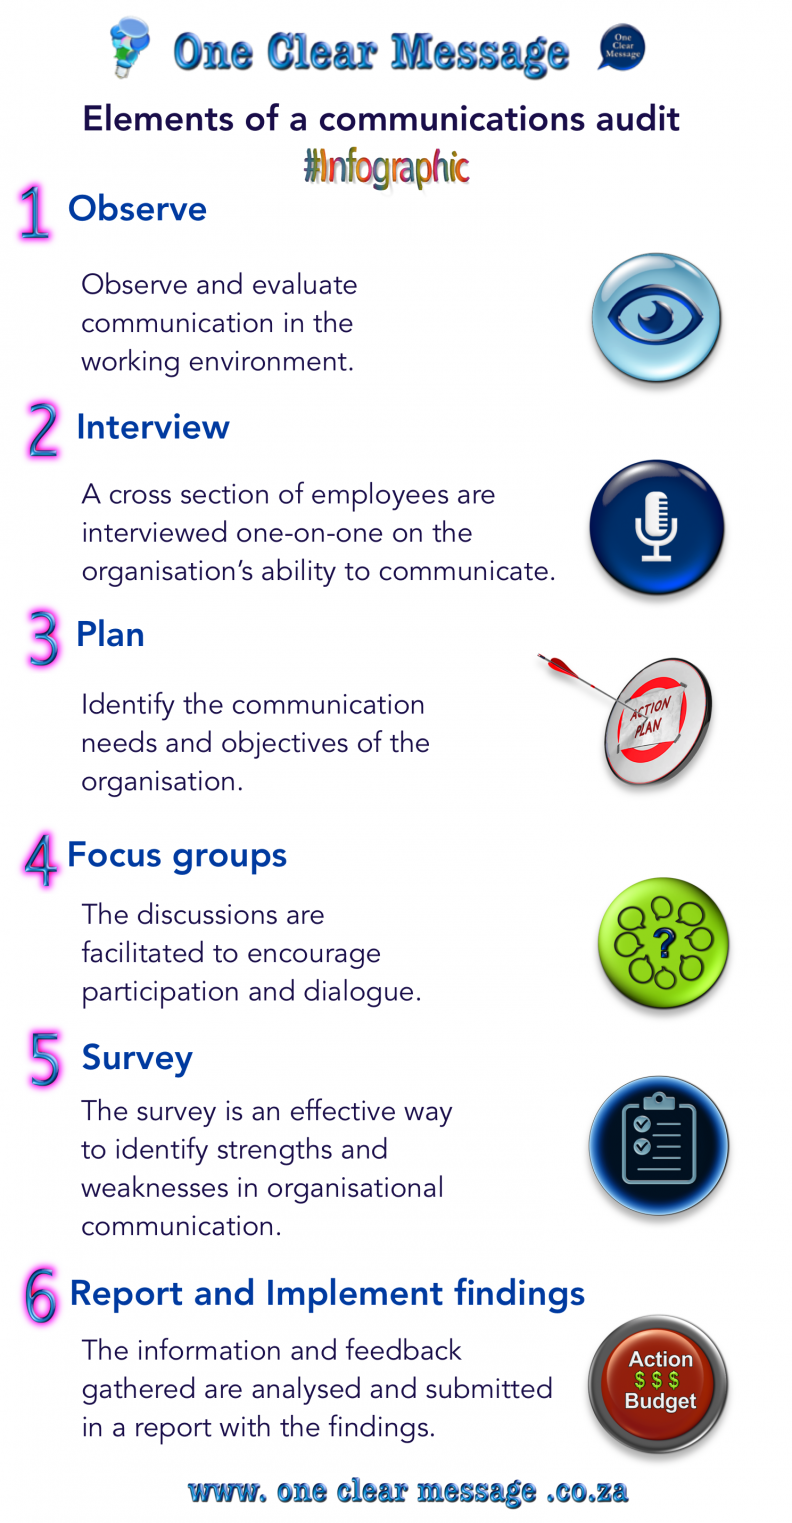 Elements of a communications audit infographic